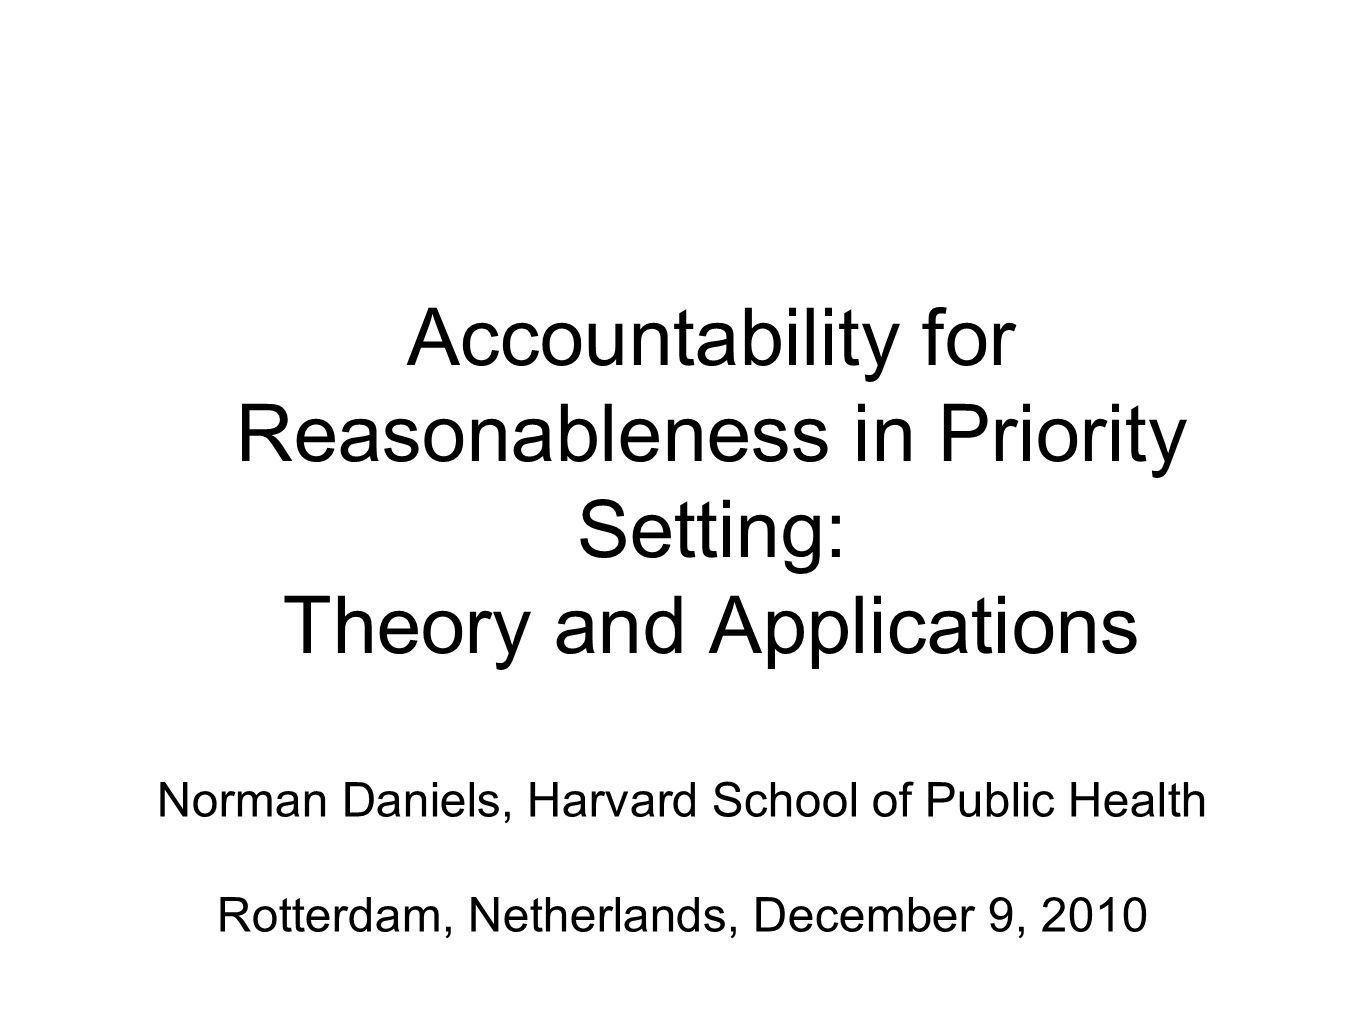 Accountability for Reasonableness in Priority Setting: Theory and Applications Norman Daniels, Harvard School of Public Health Rotterdam, Netherlands, December 9, 2010